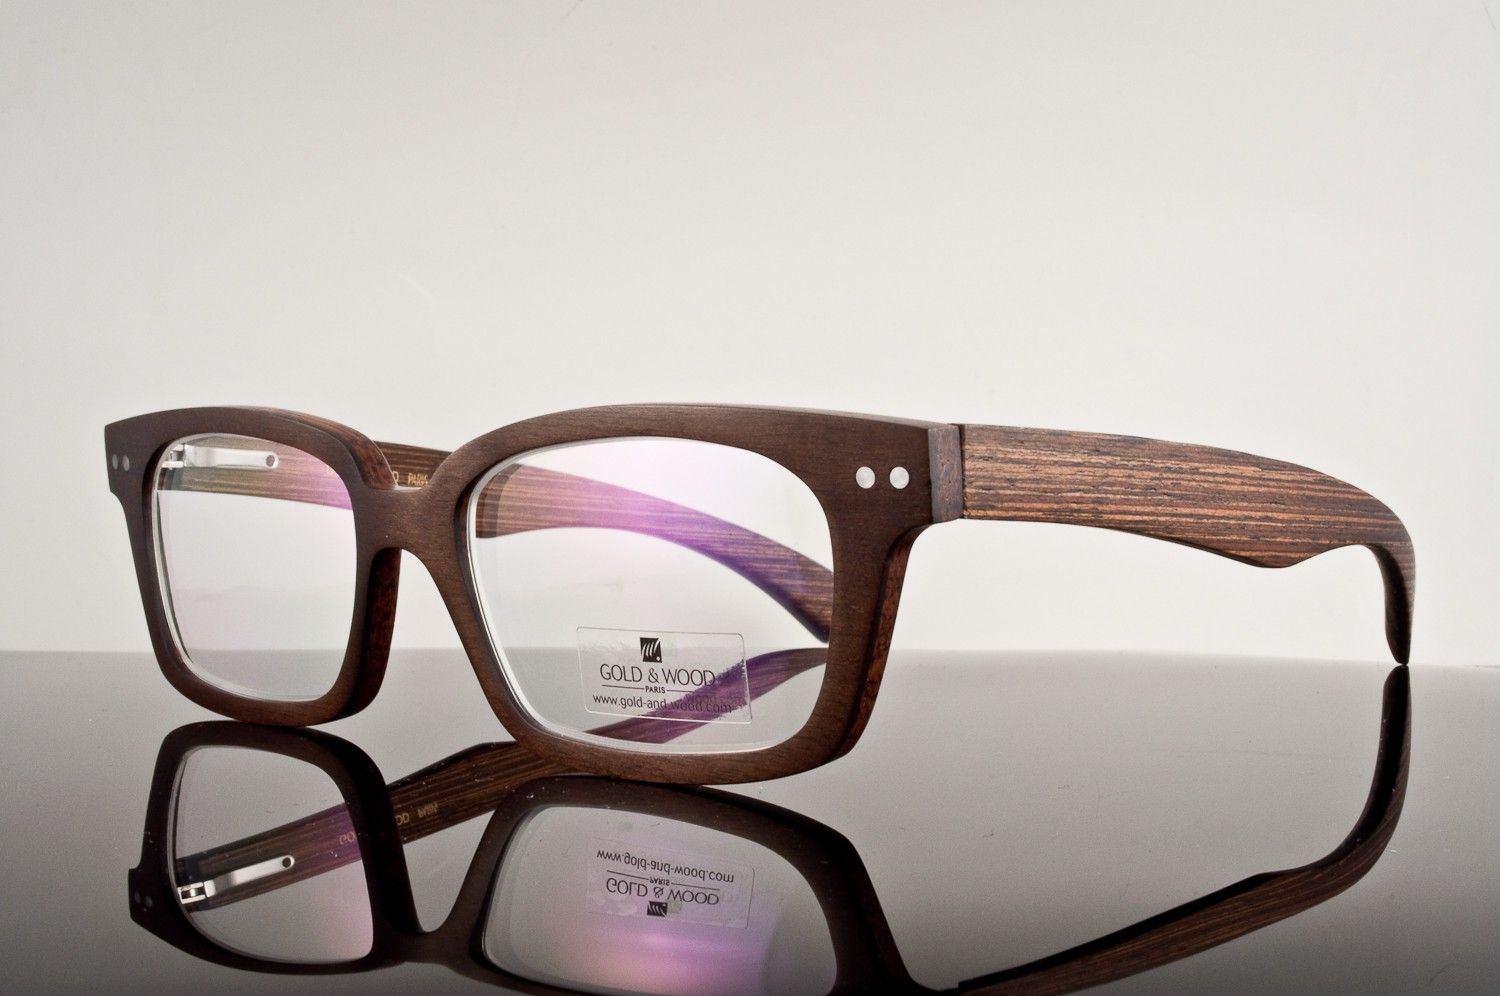 gold wood is an exclusive eyewear company specializing in luxury eyewear and sunglasses gold wood design frames using only the finest of materials - Wooden Eyeglass Frames